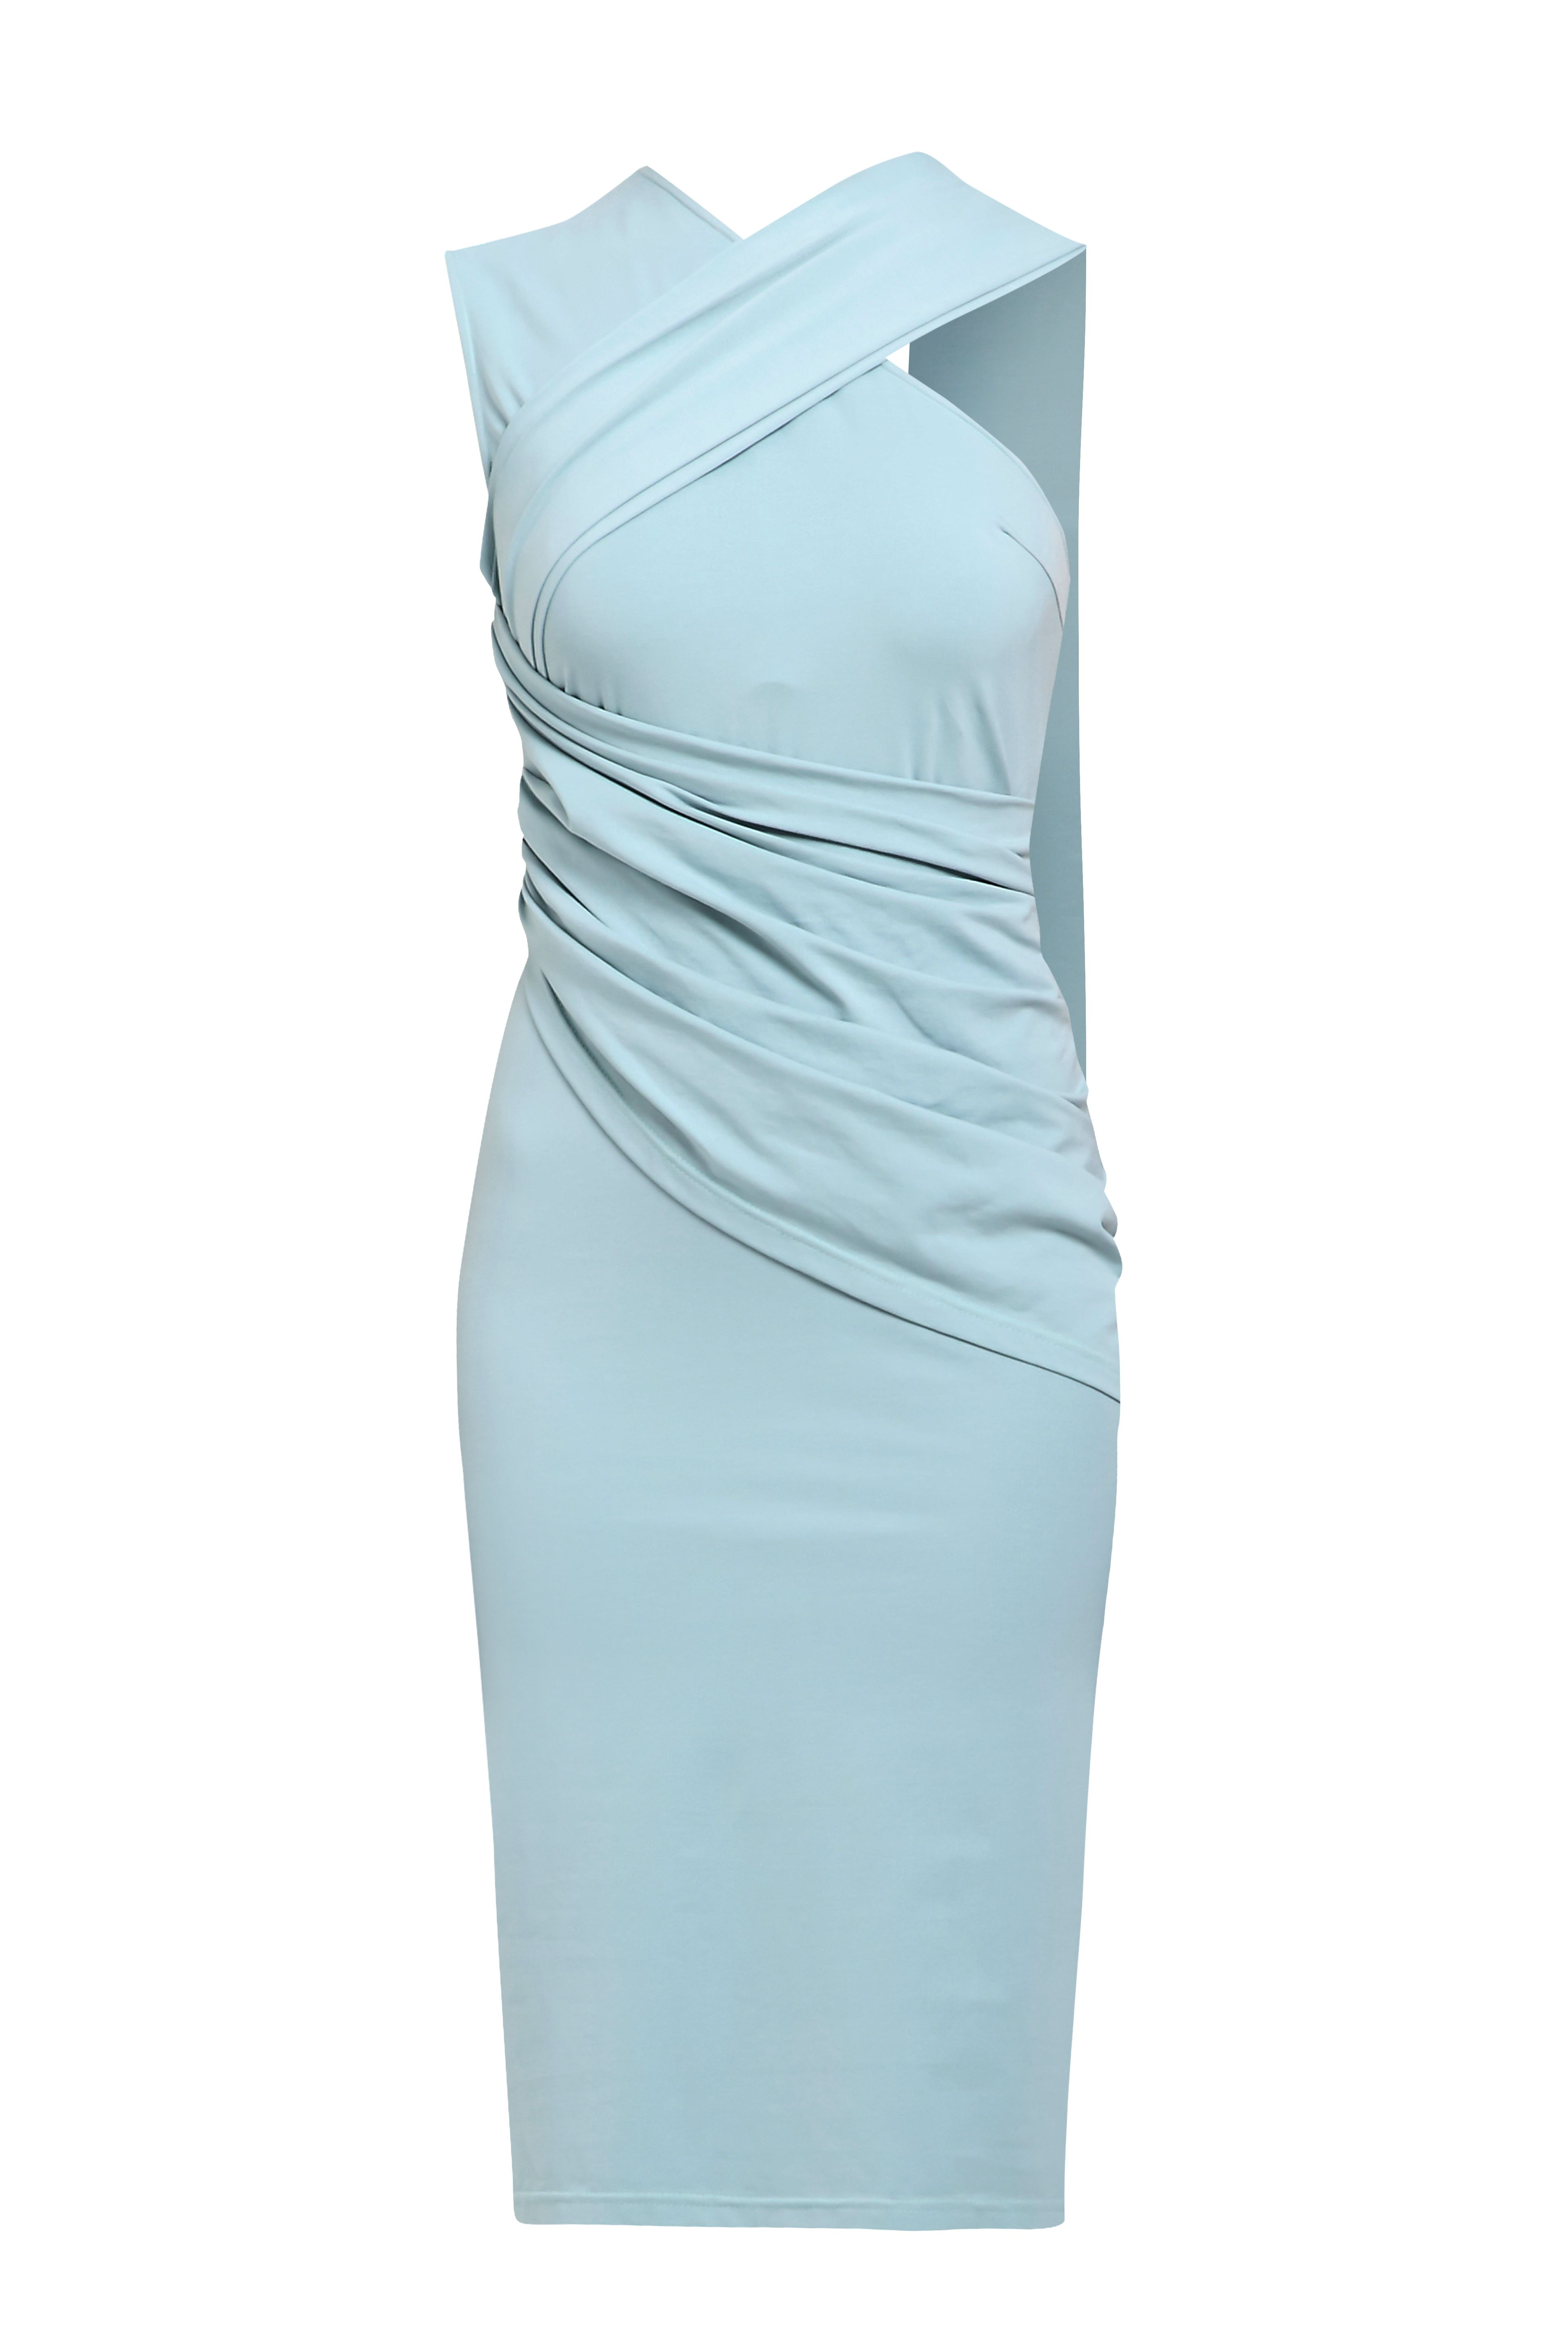 Jersey Dress with Shoulder Drape in Teal  This sleeveless jersey cocktail dress with its free-flowing shoulder drape, ruched waist and side zip will have you feeling like a modern day muse. Pair with patent heels for a truly iconic look.   https://www.paisie.com/collections/new-in/products/jersey-dress-with-shoulder-drape-in-teal